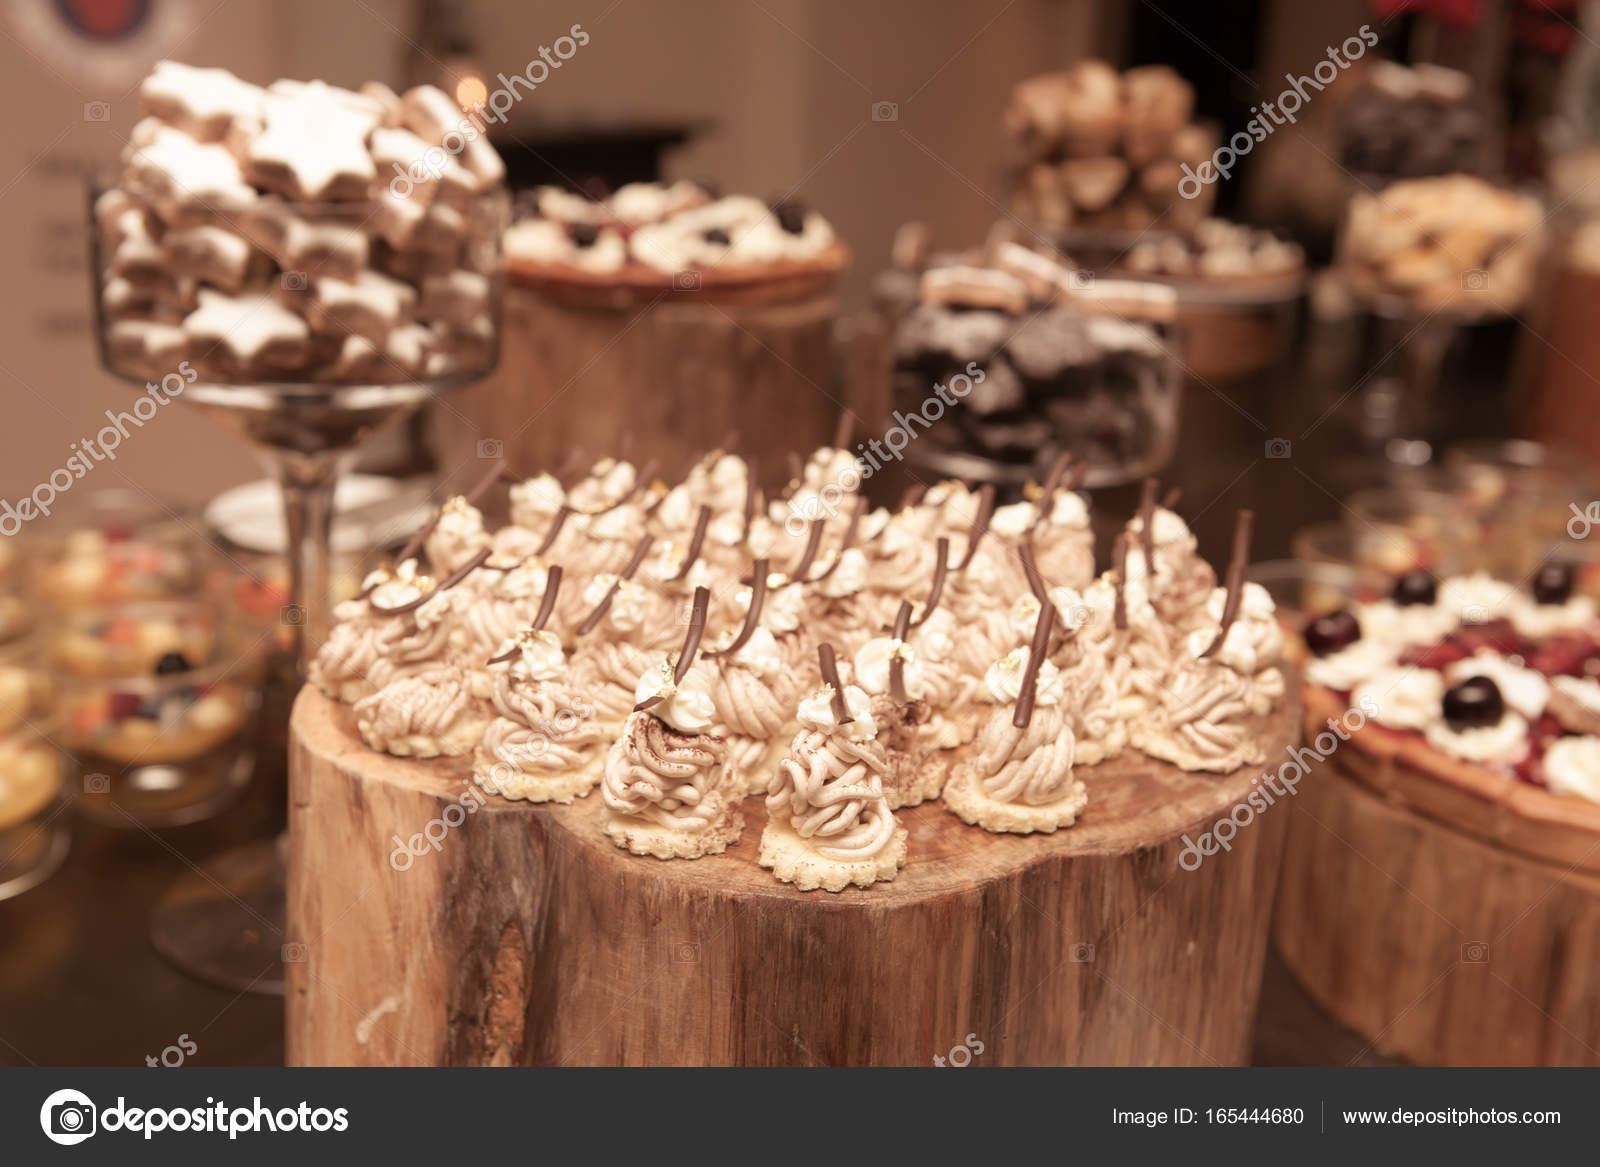 Decoration Of Dessert On Wood Table In The Restaurant With Vinta